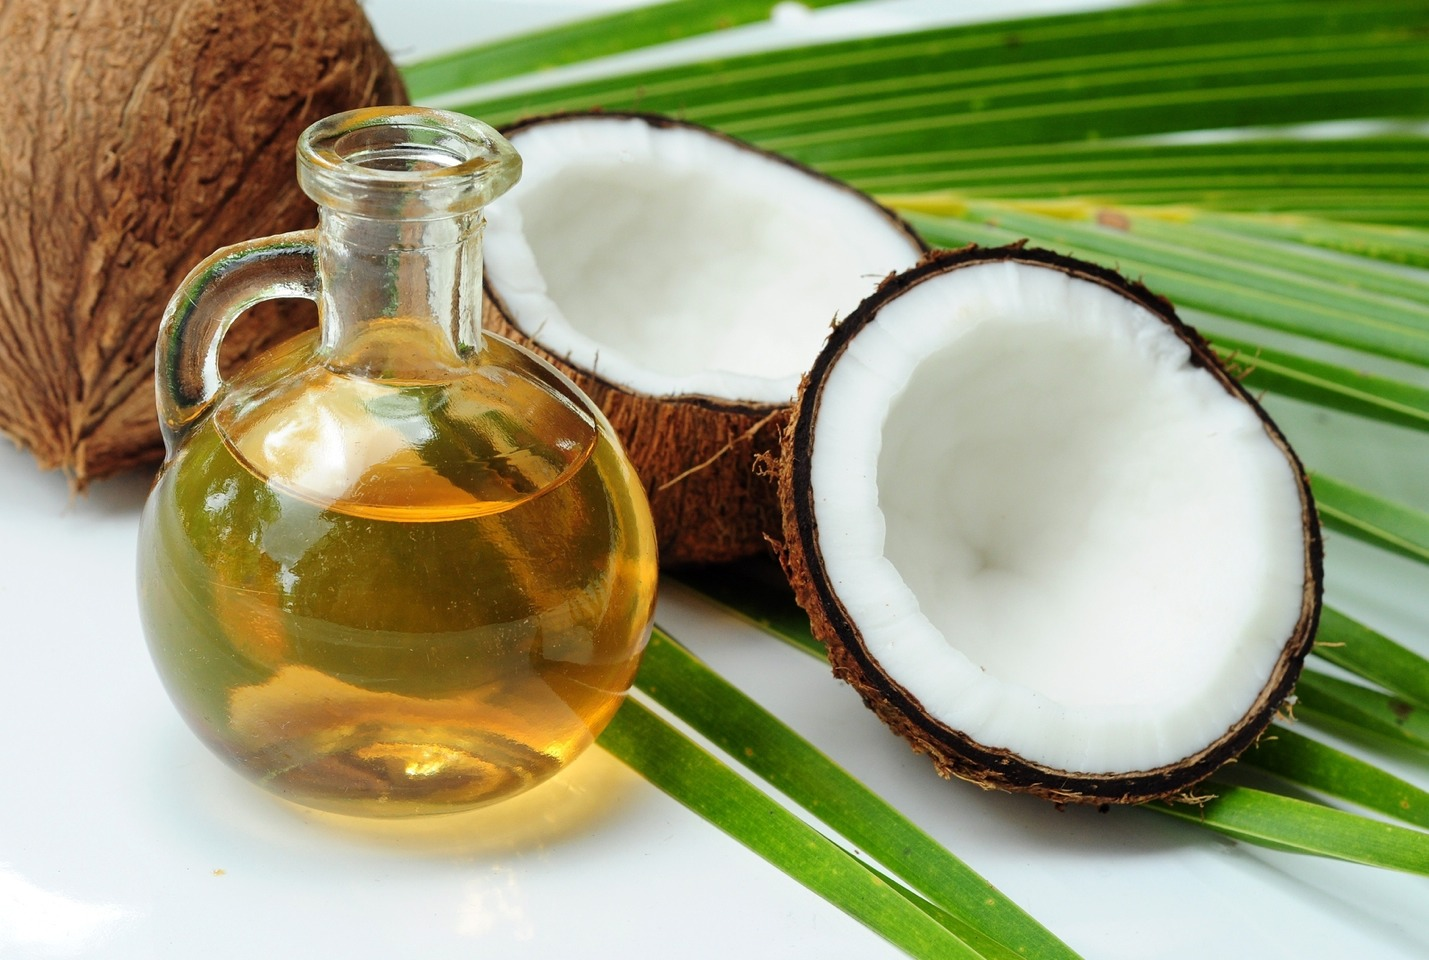 Is your hair dry, and damaged from using too much heat like straightening irons? Coconut oil is great to use as a repairing hair mask!